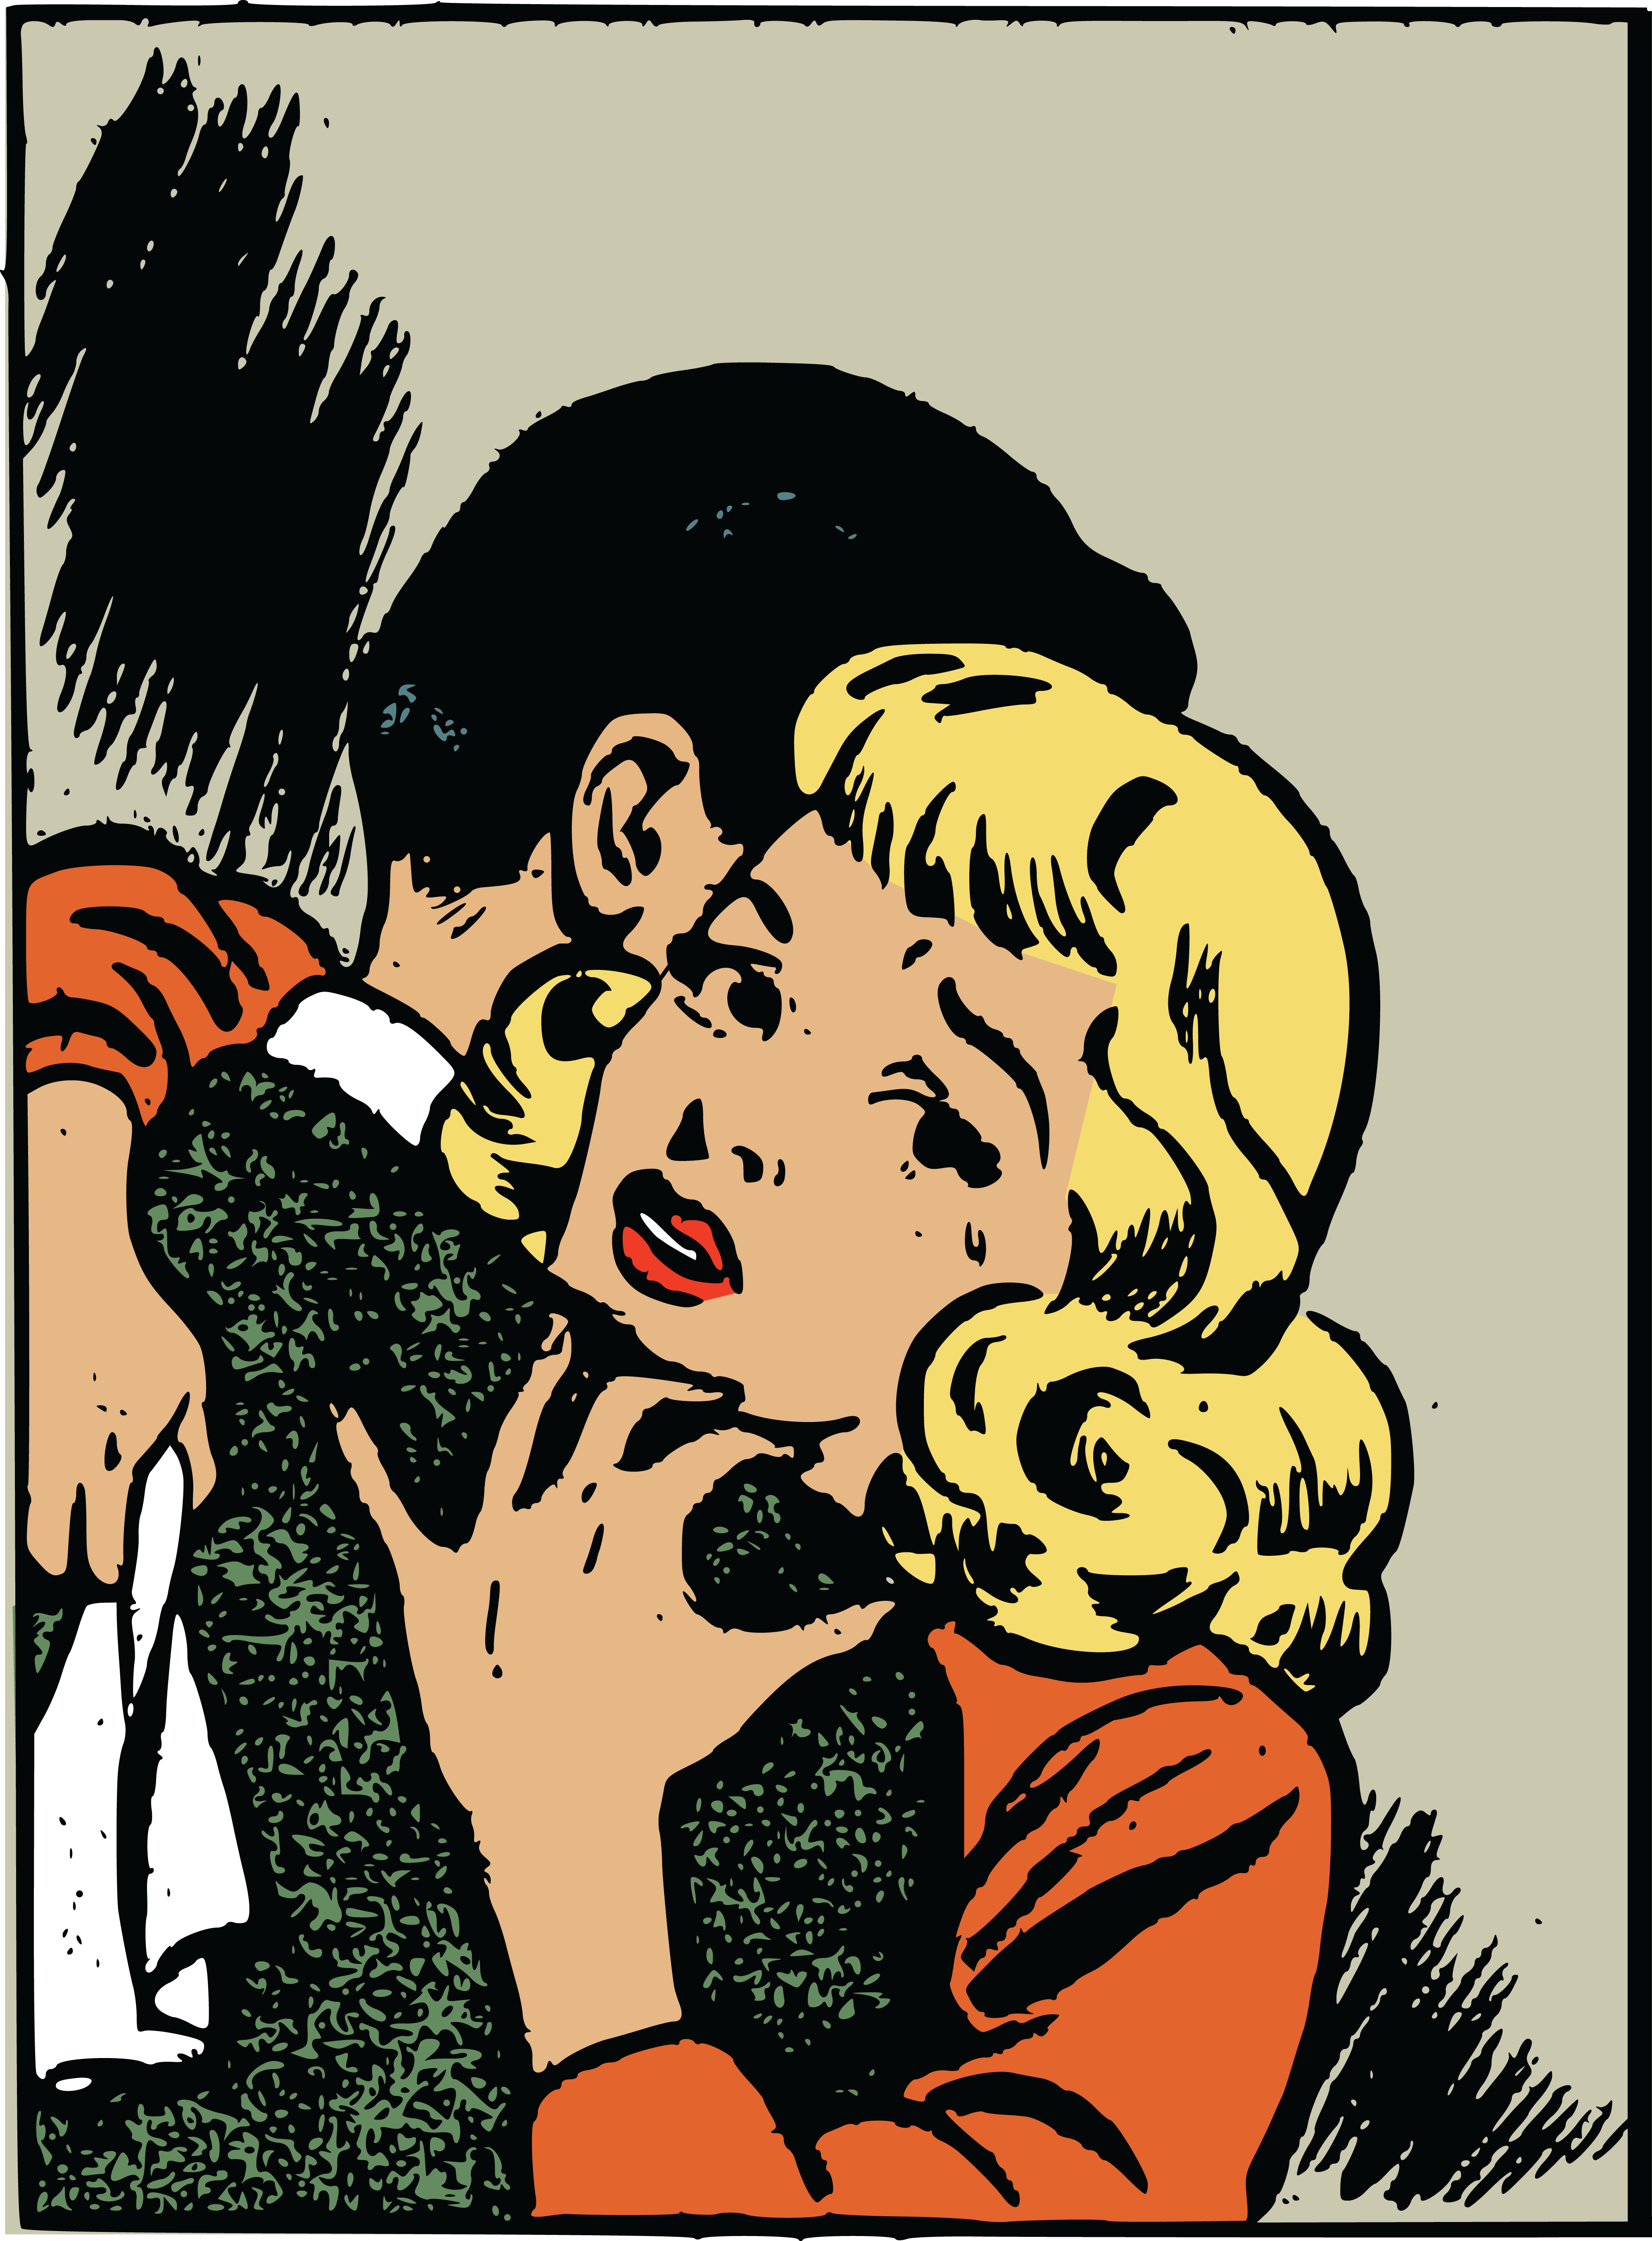 free clipart of a pop art comic styled couple hugging